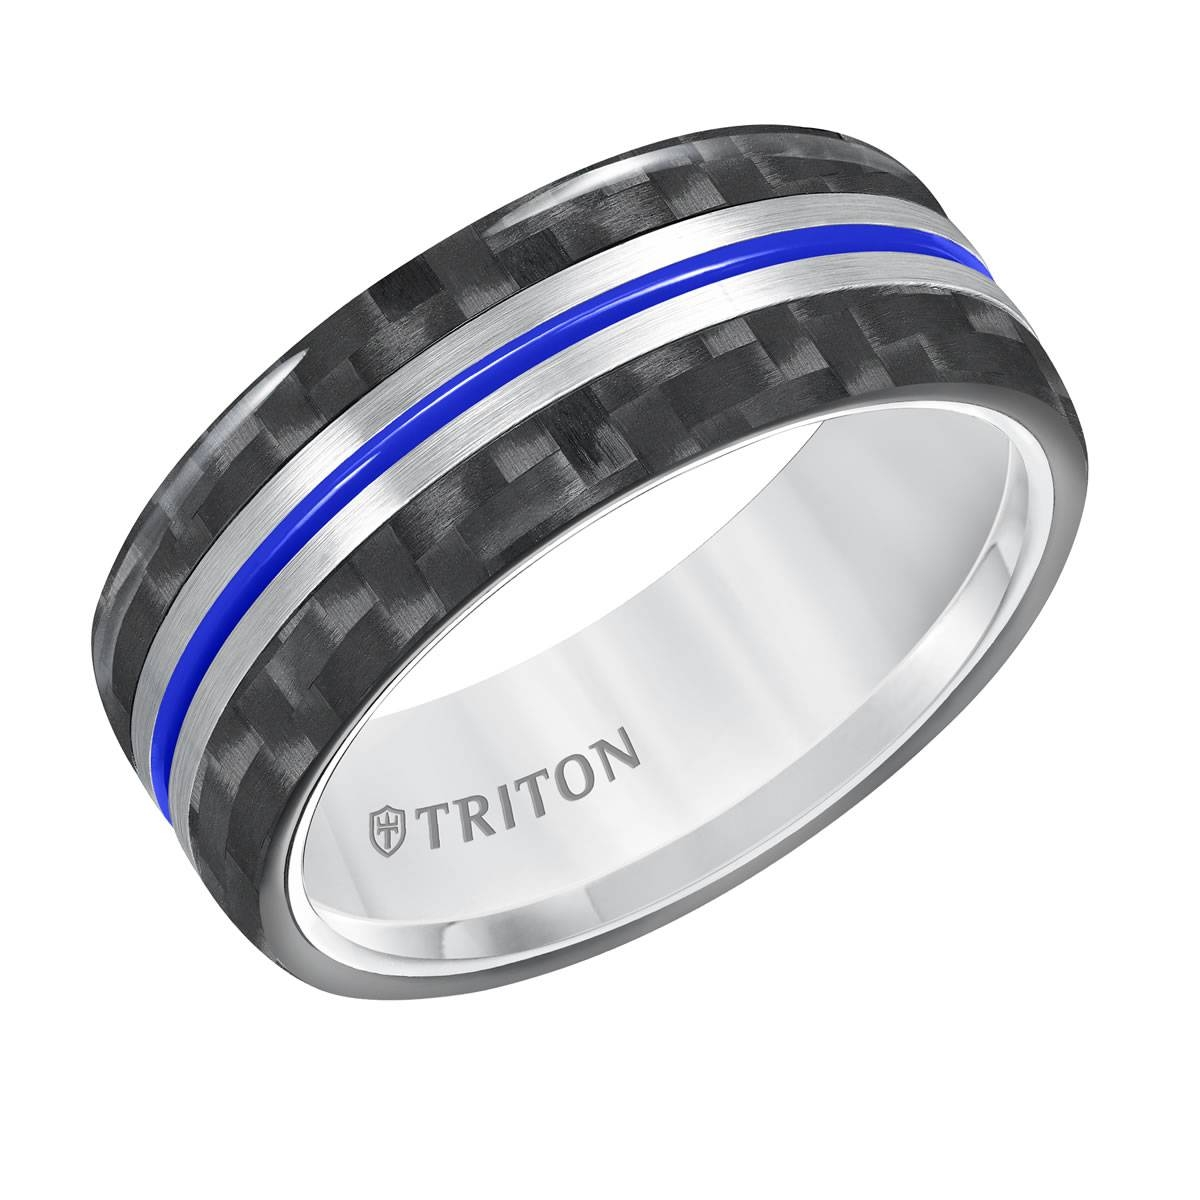 jewelry collections edge carbide ring wedding angle bevel g tungsten rings triton tc link and bands